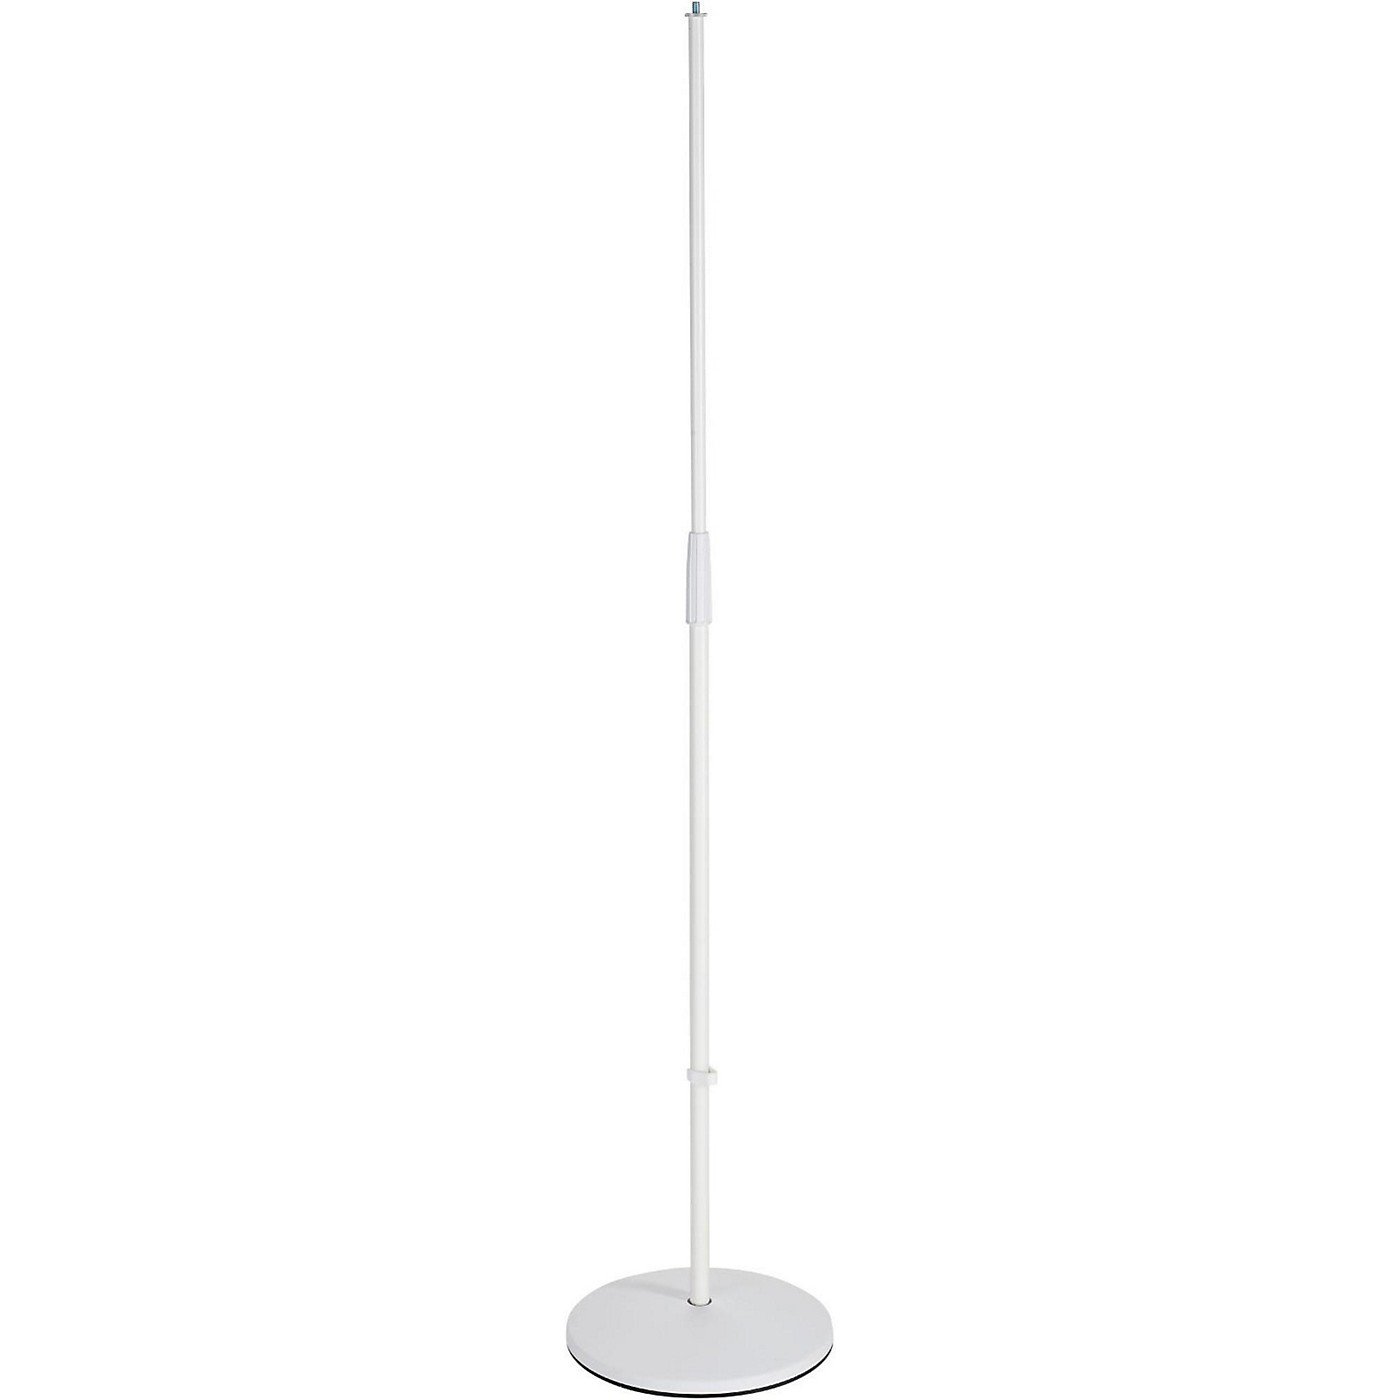 K&M 26010.500.76 White Round Base Microphone Stand thumbnail